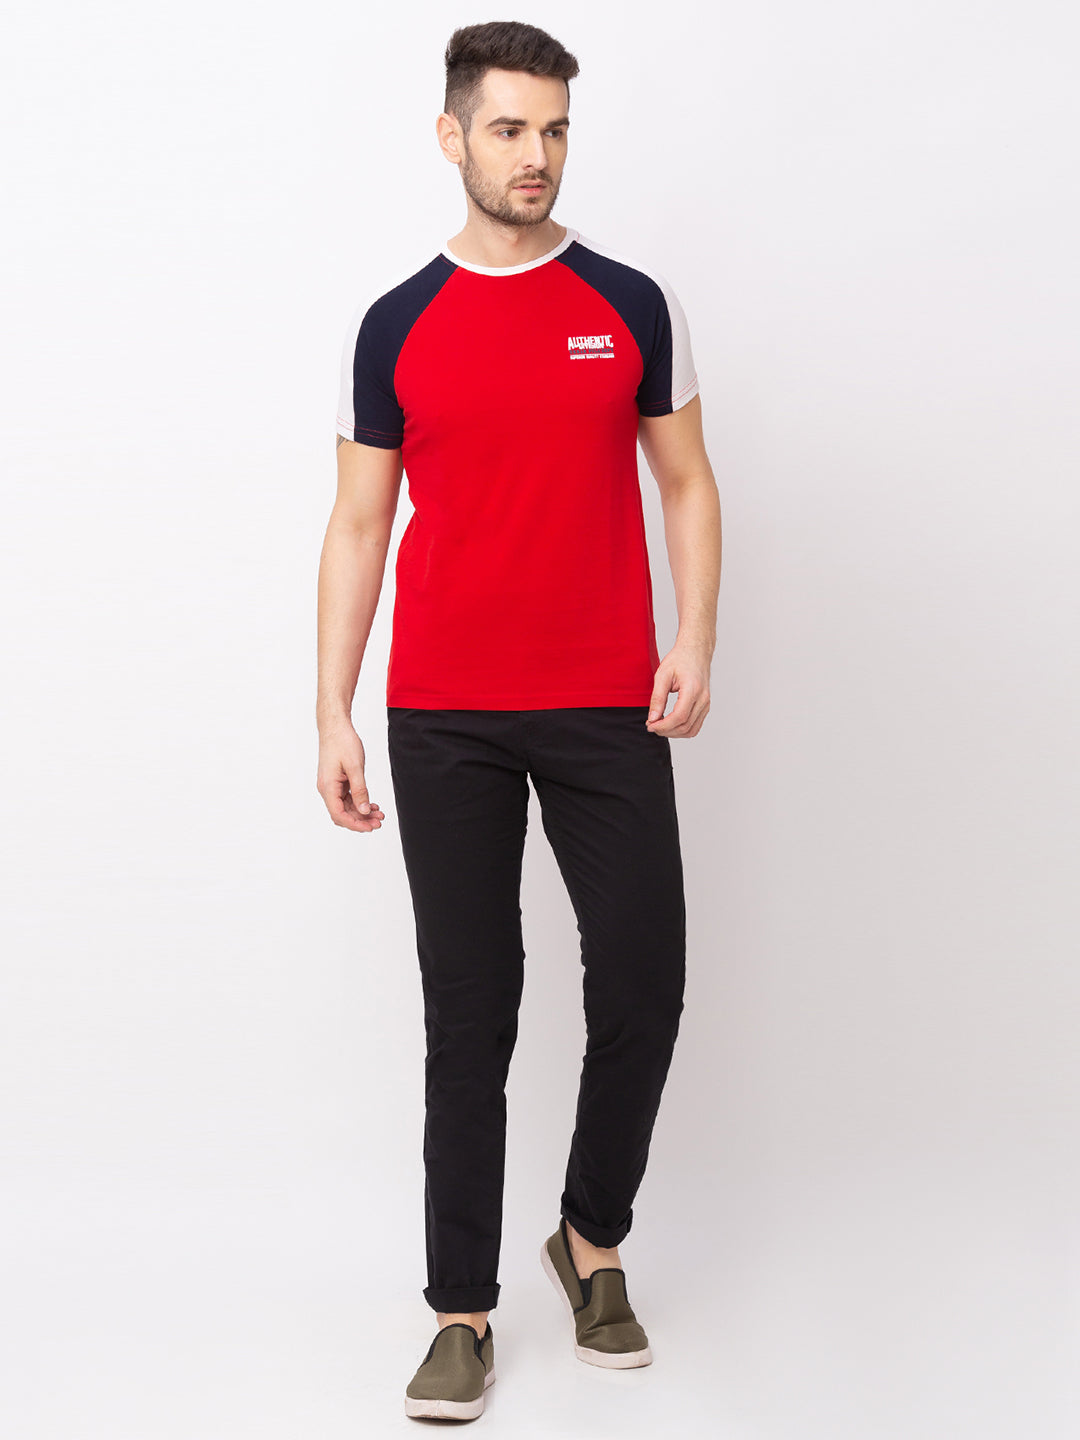 Globus Red Solid T-Shirt-5